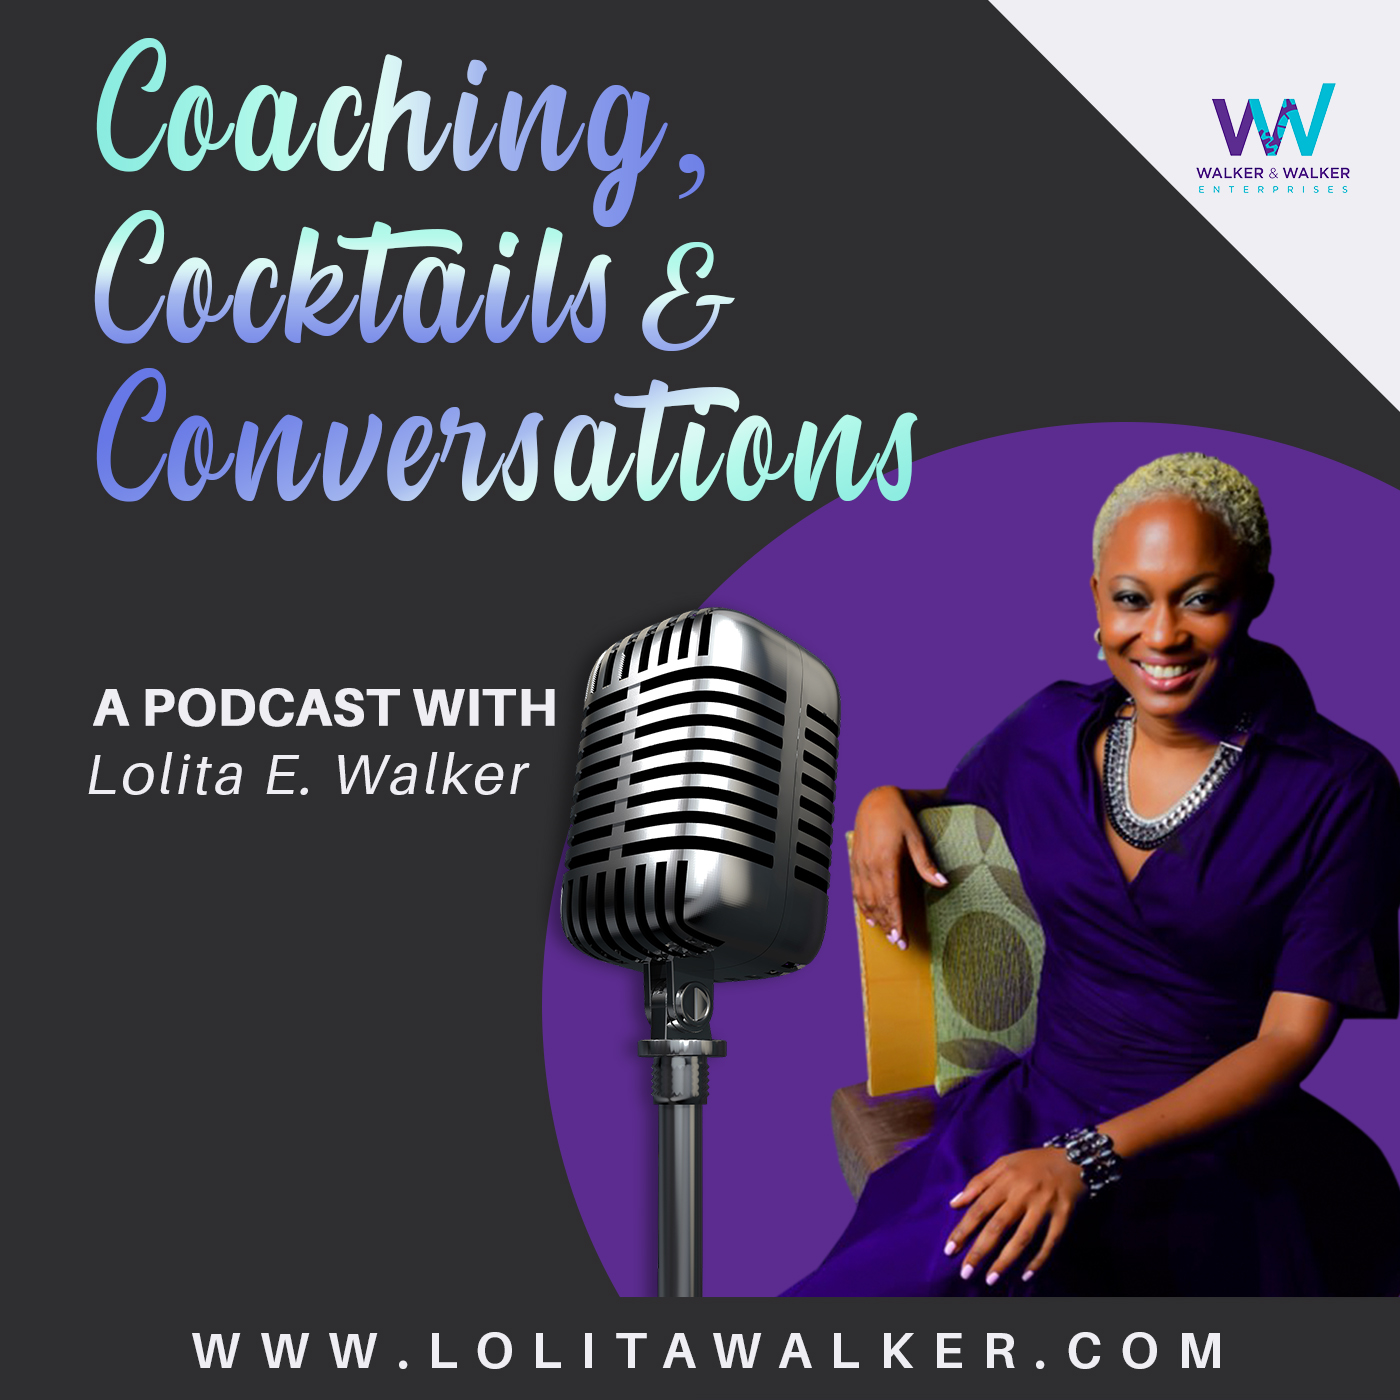 Coaching, Cocktails, & Conversations:  The Podcast with Lolita E. Walker